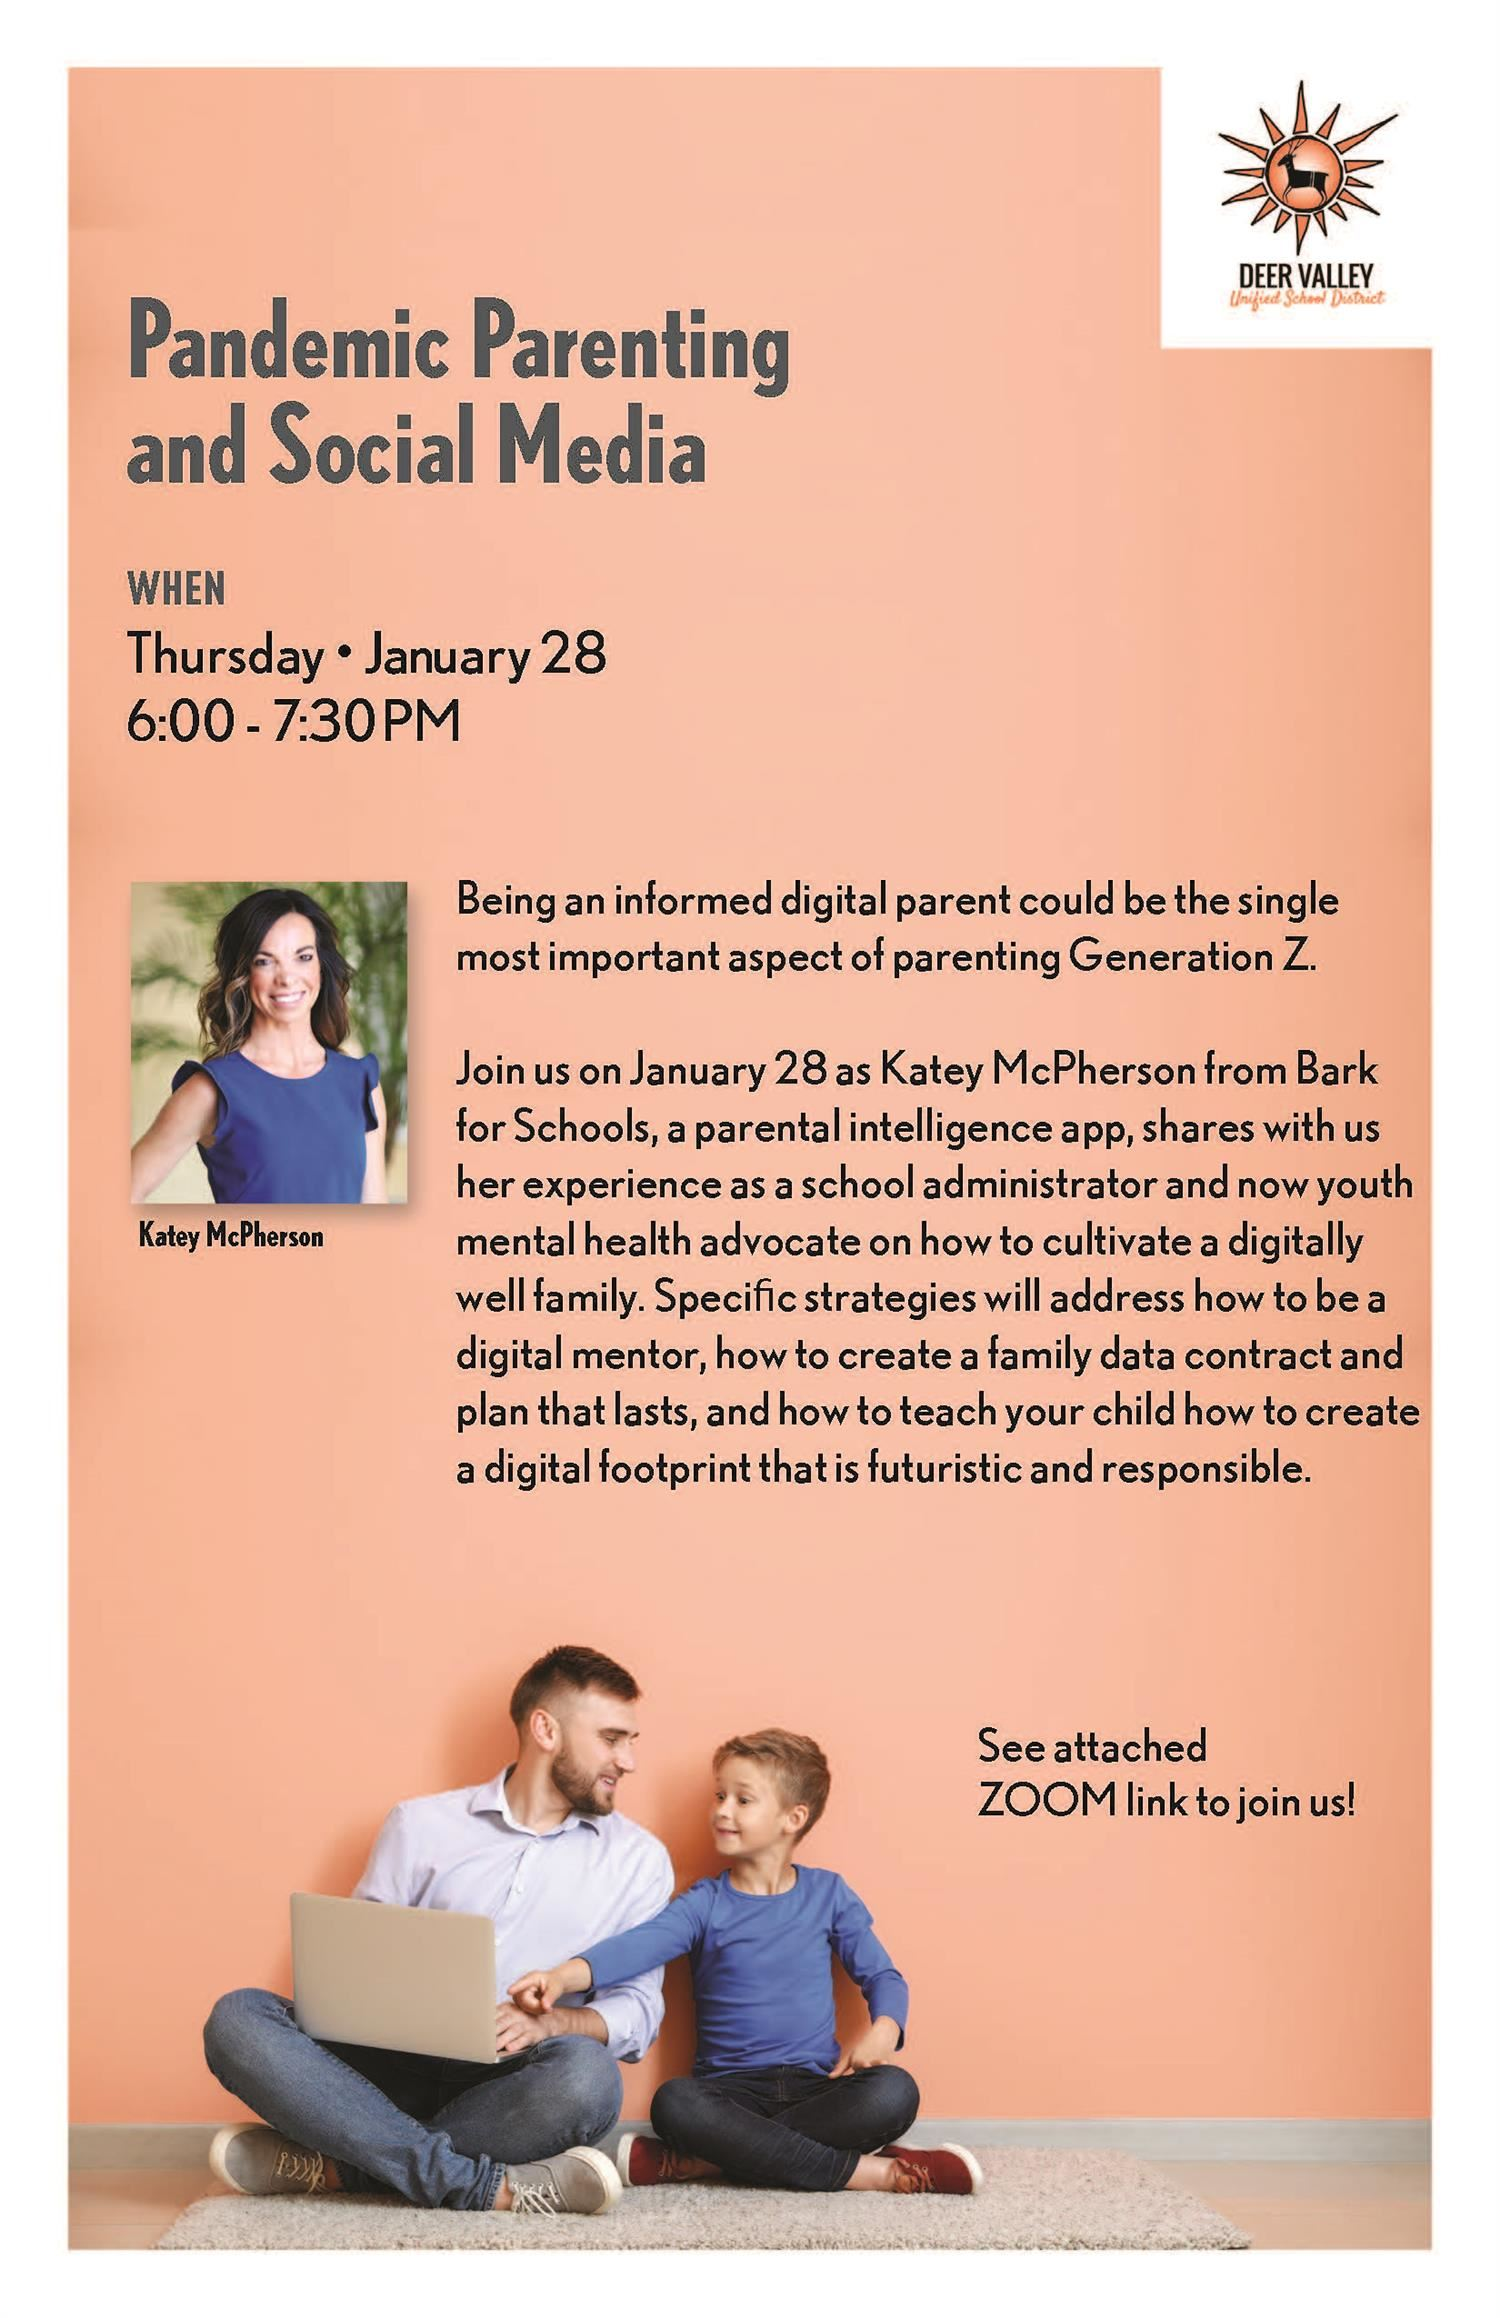 Pandemic Parenting and Social Media Webinar Jan. 28!